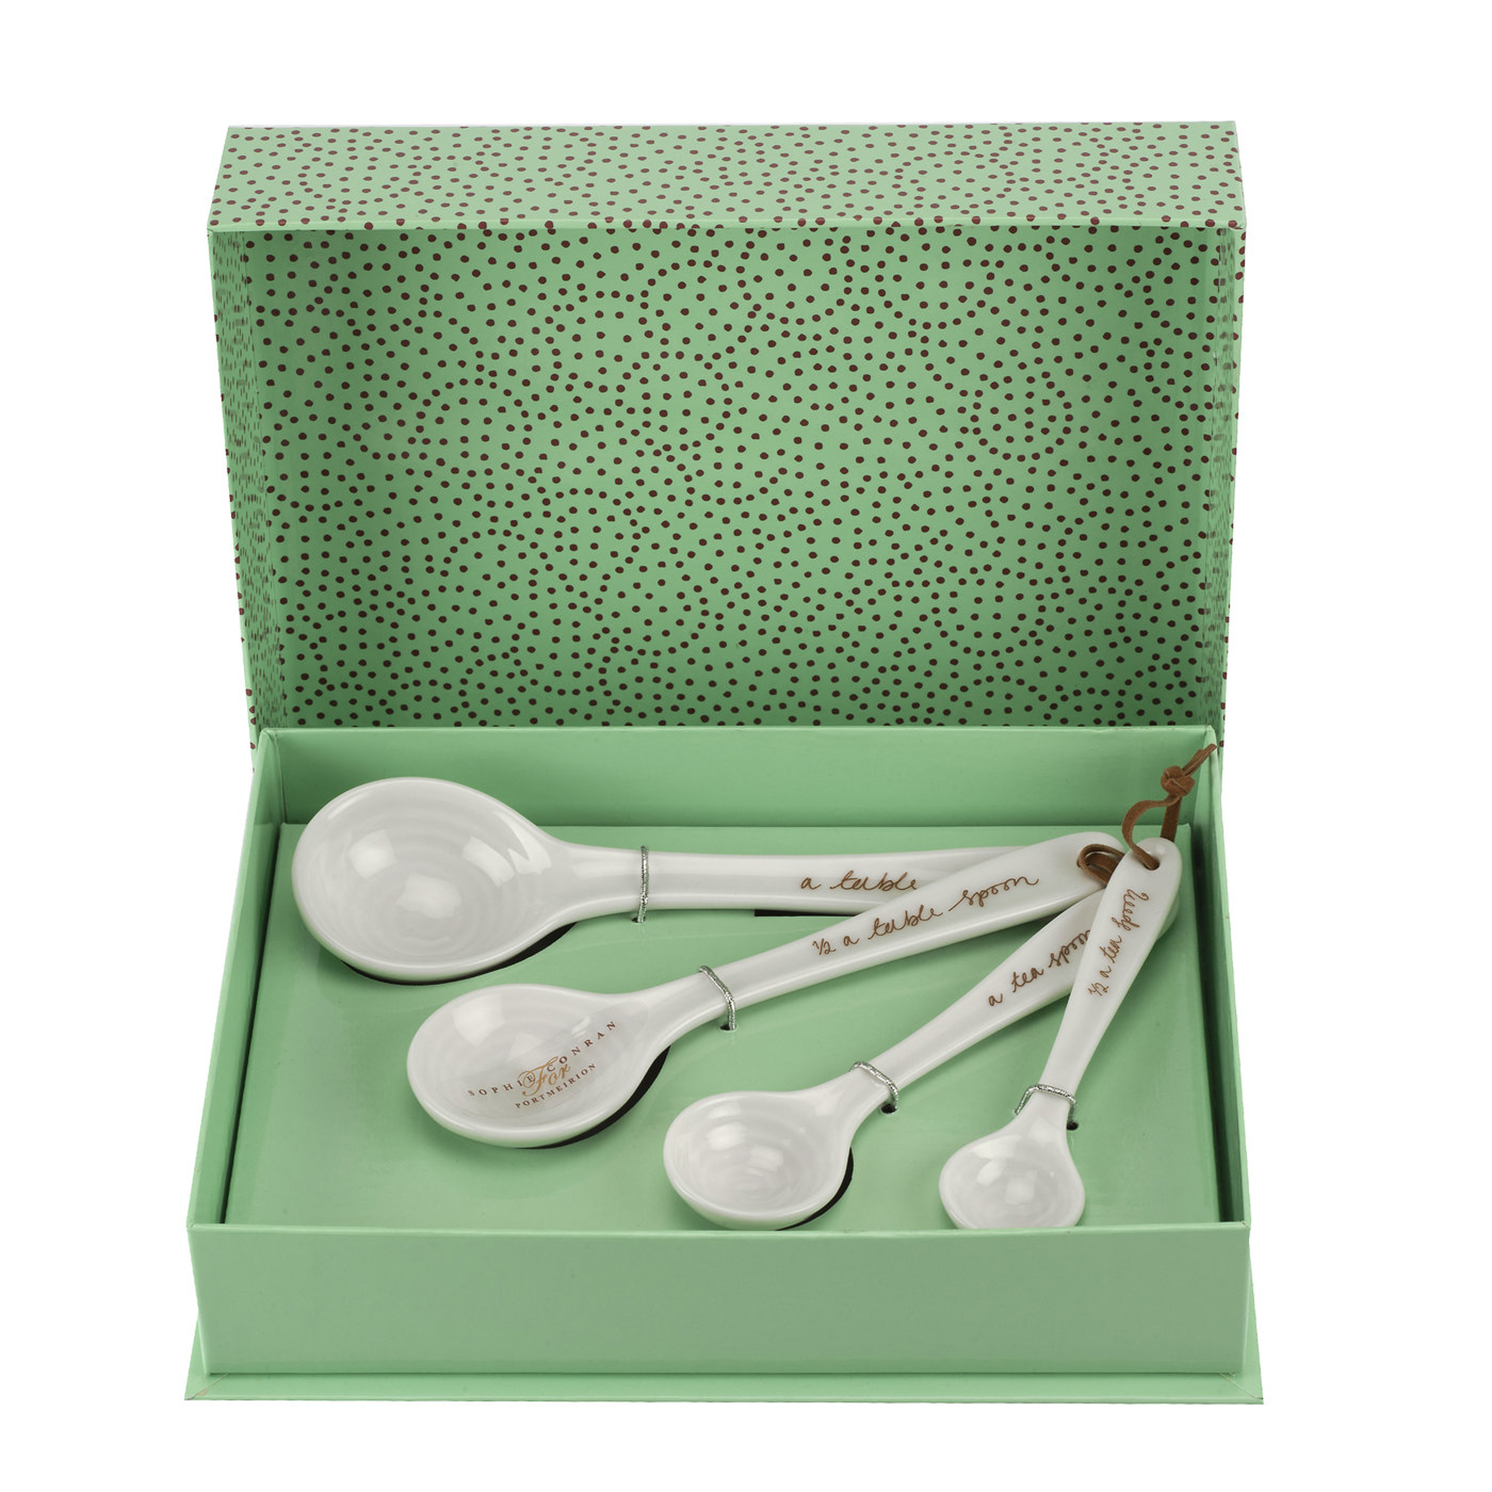 Sophie Conran for Portmeirion – White Set of 4 Measuring Spoons in Gift Box